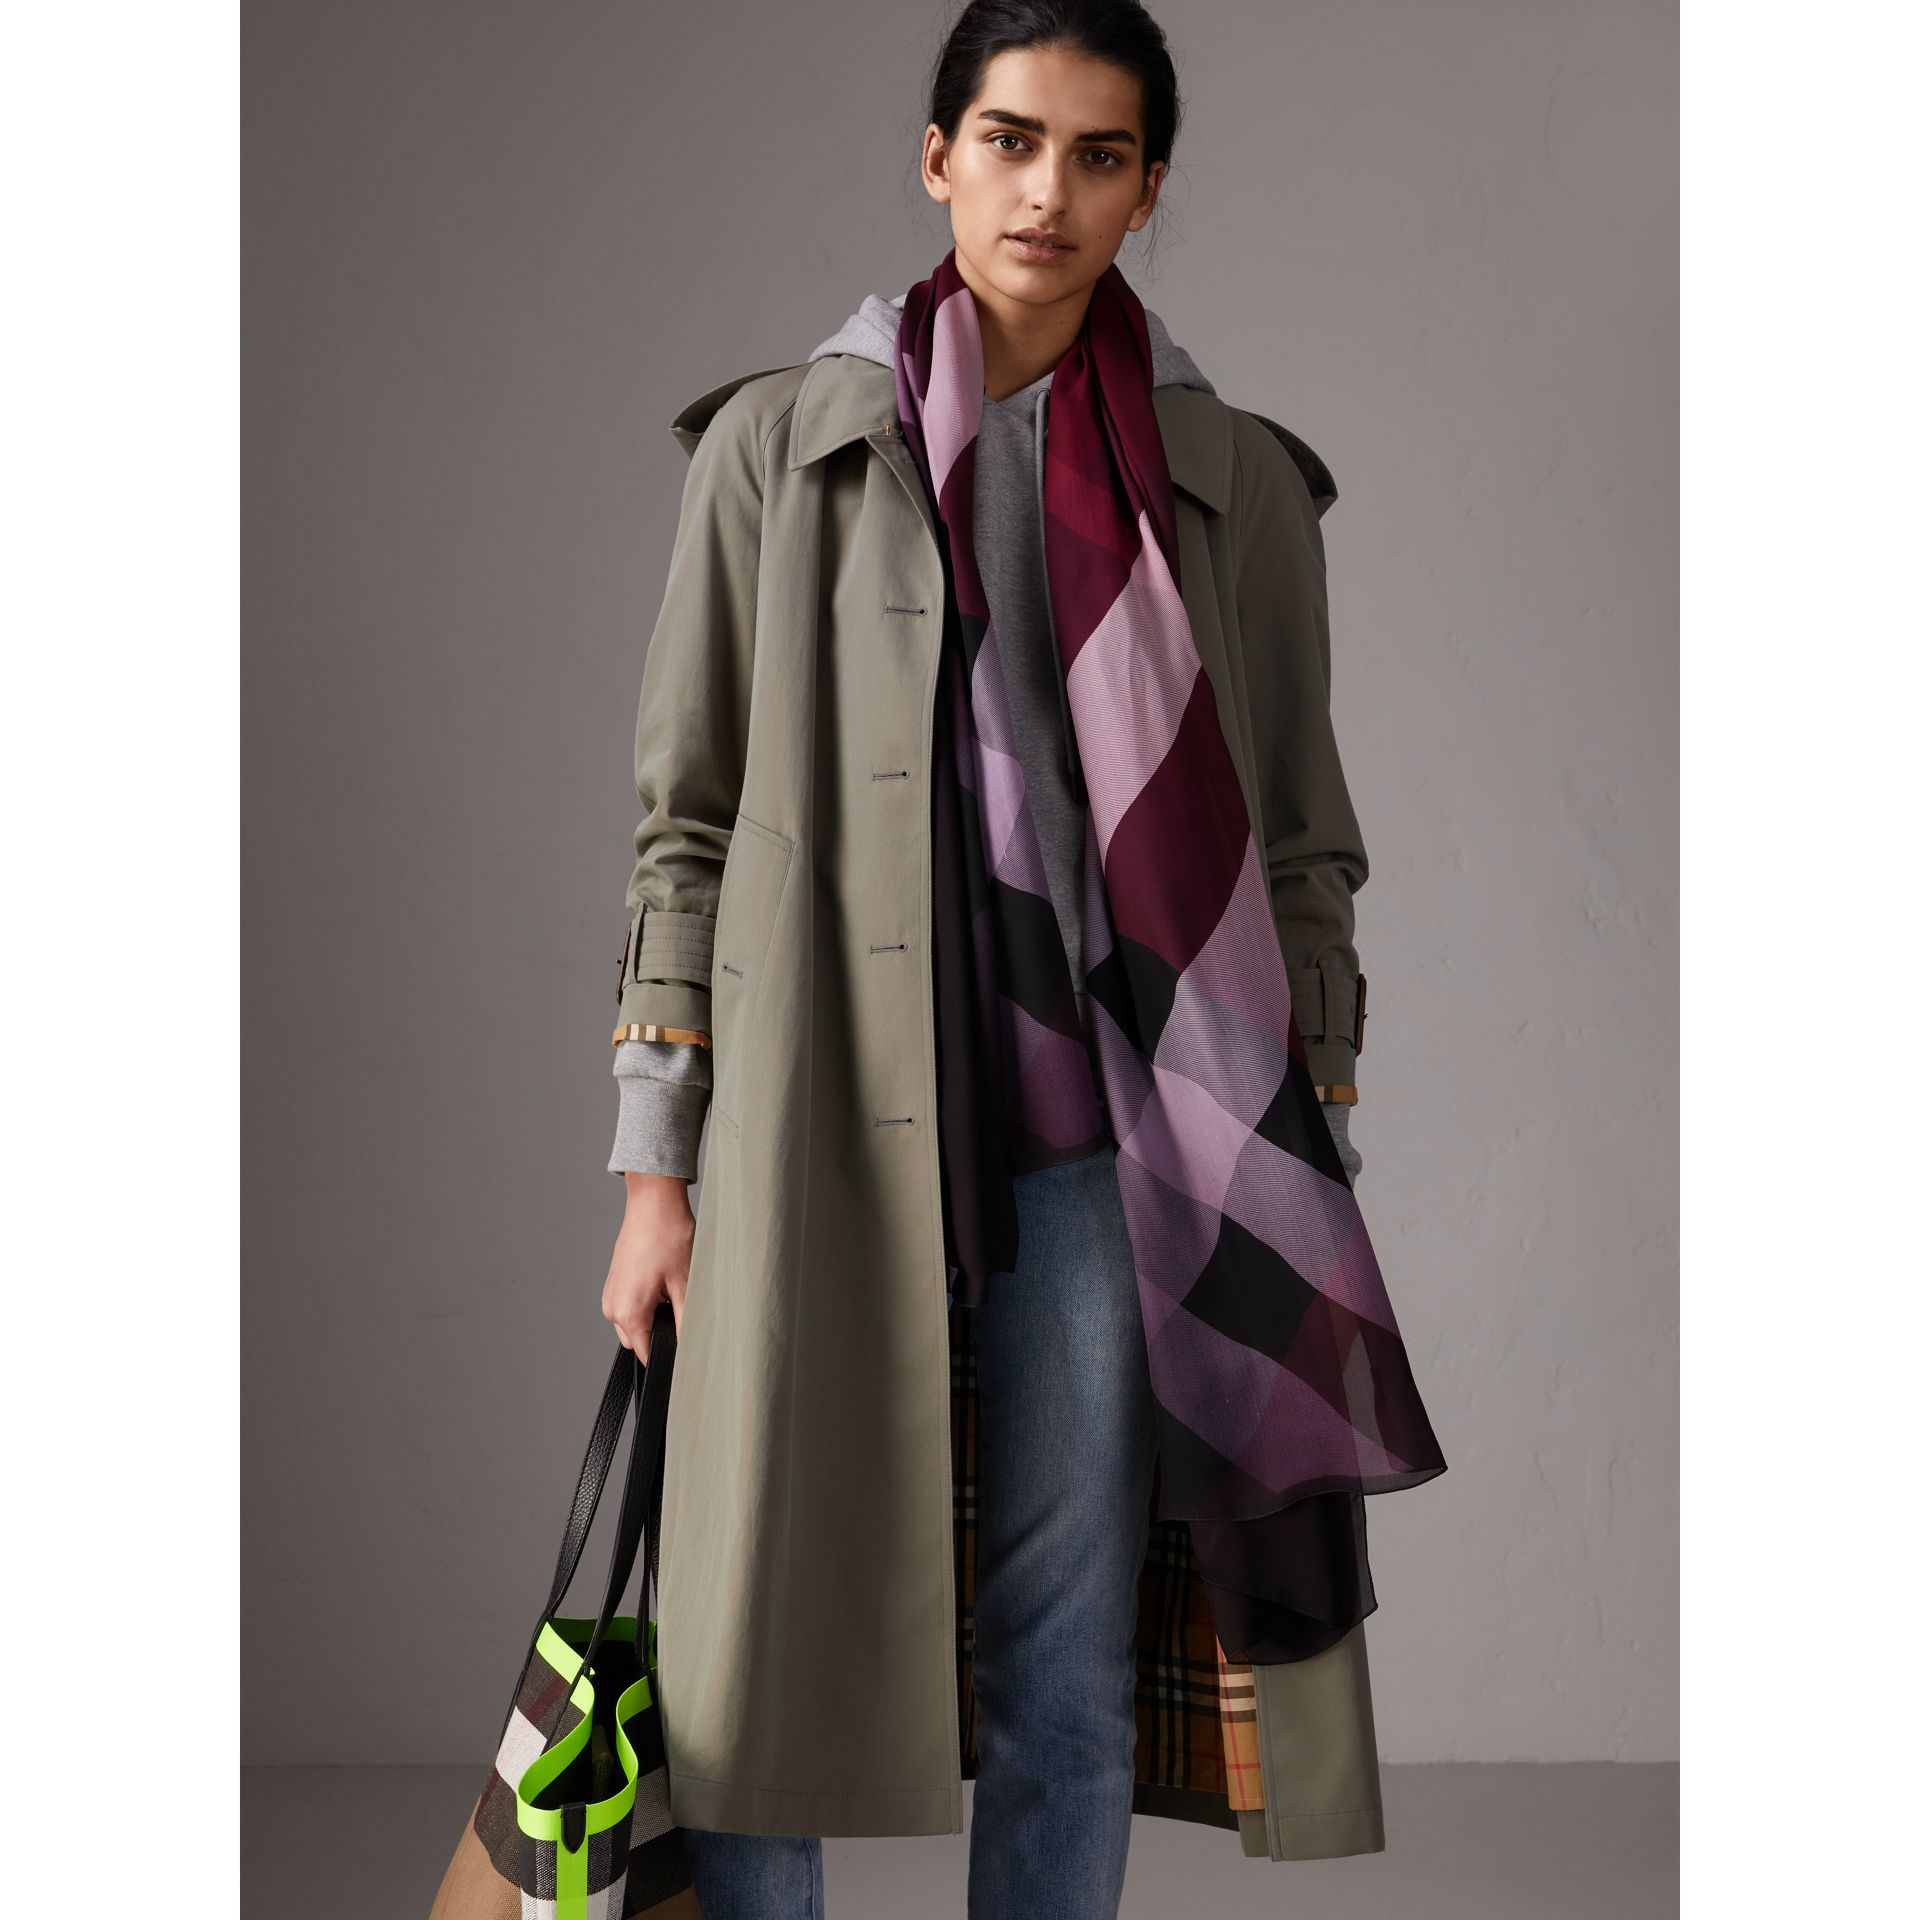 Ombré Washed Check Silk Scarf in Plum - Women | Burberry United Kingdom - gallery image 2